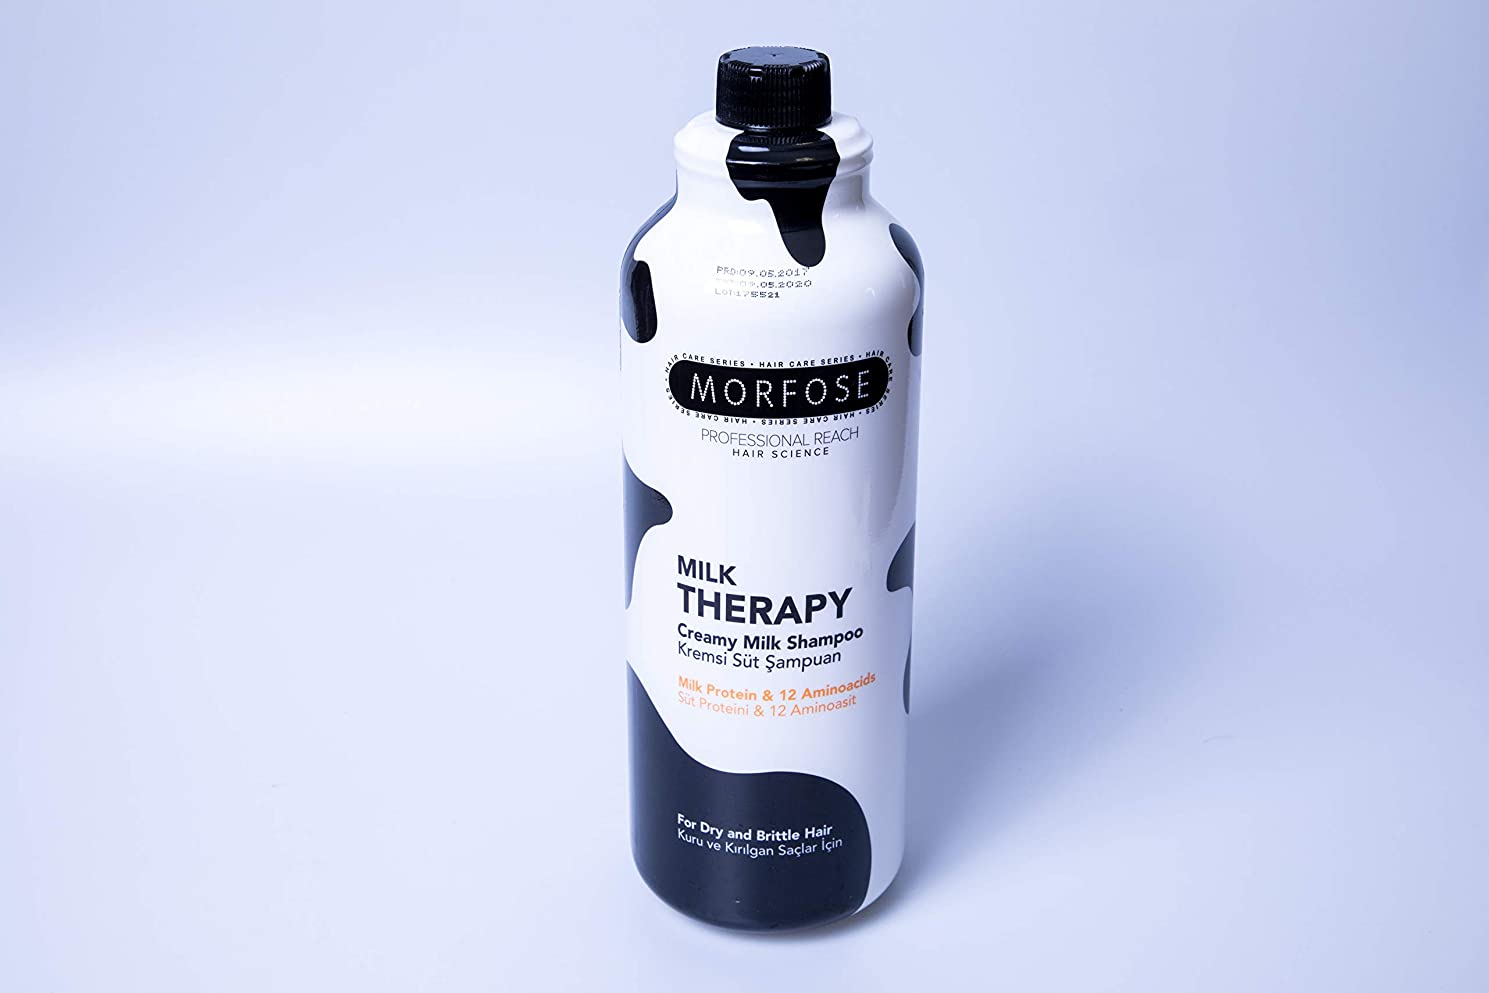 Morfose Pro Milk Therapy Creamy Milk Shampoo (33.81 oz / 1000ml)